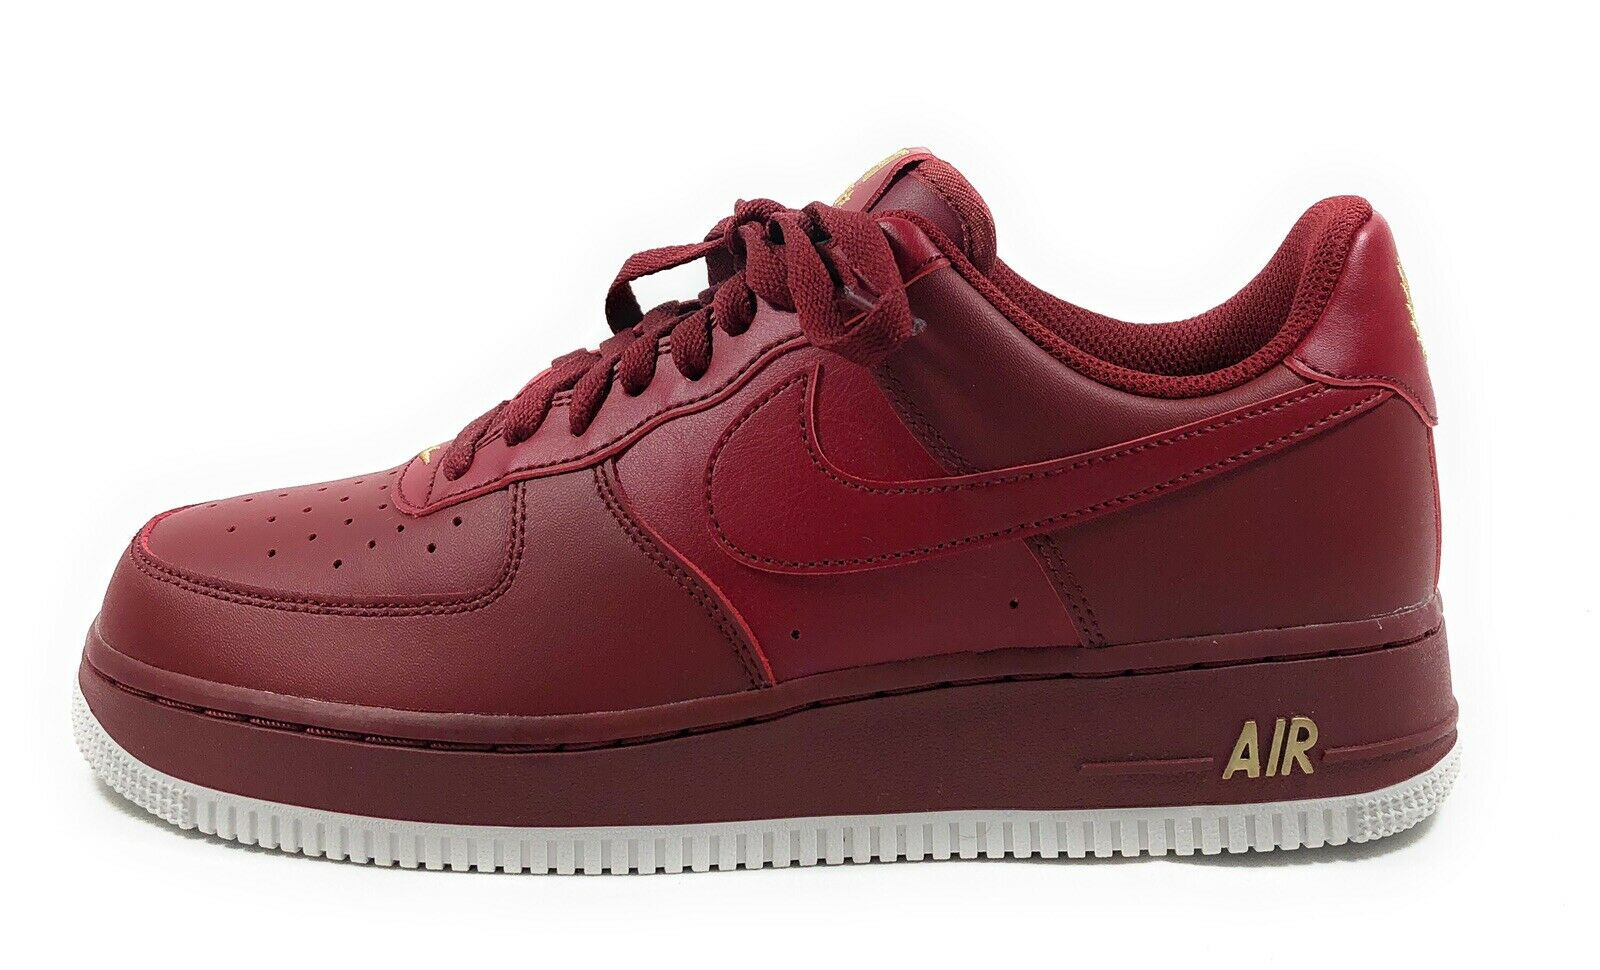 Nike Force 1'07 para hombre hombre hombre Air Team Rojo Low Top Estilo de vida zapatillas AA4083-603 Talla 12 6effee